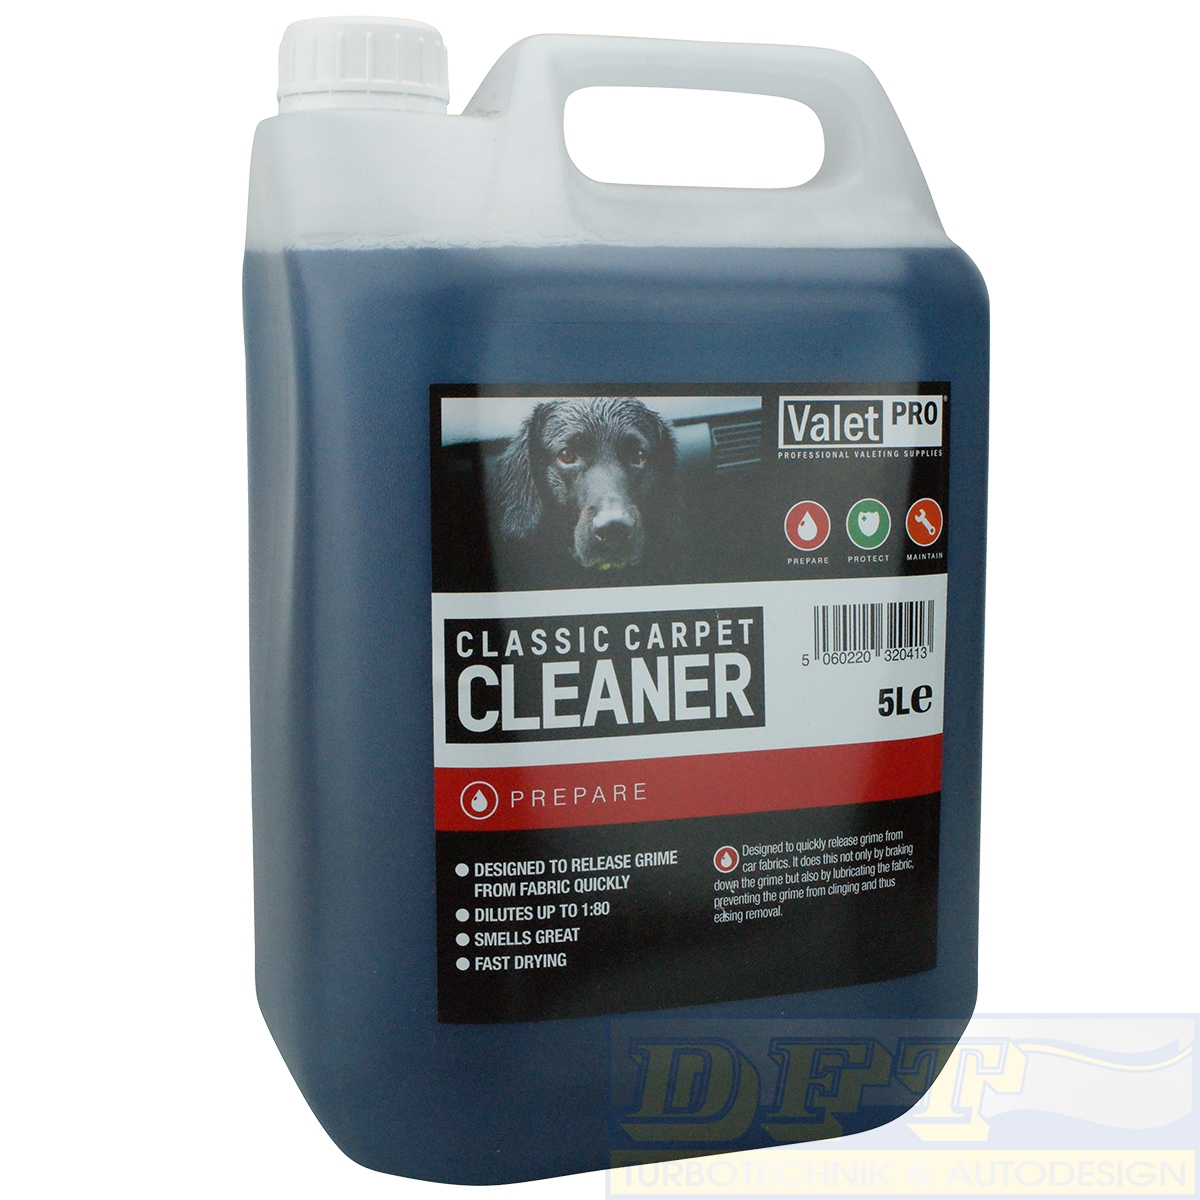 valetpro classic carpet cleaner teppich 5 liter kanister 3 96 eur liter ebay. Black Bedroom Furniture Sets. Home Design Ideas